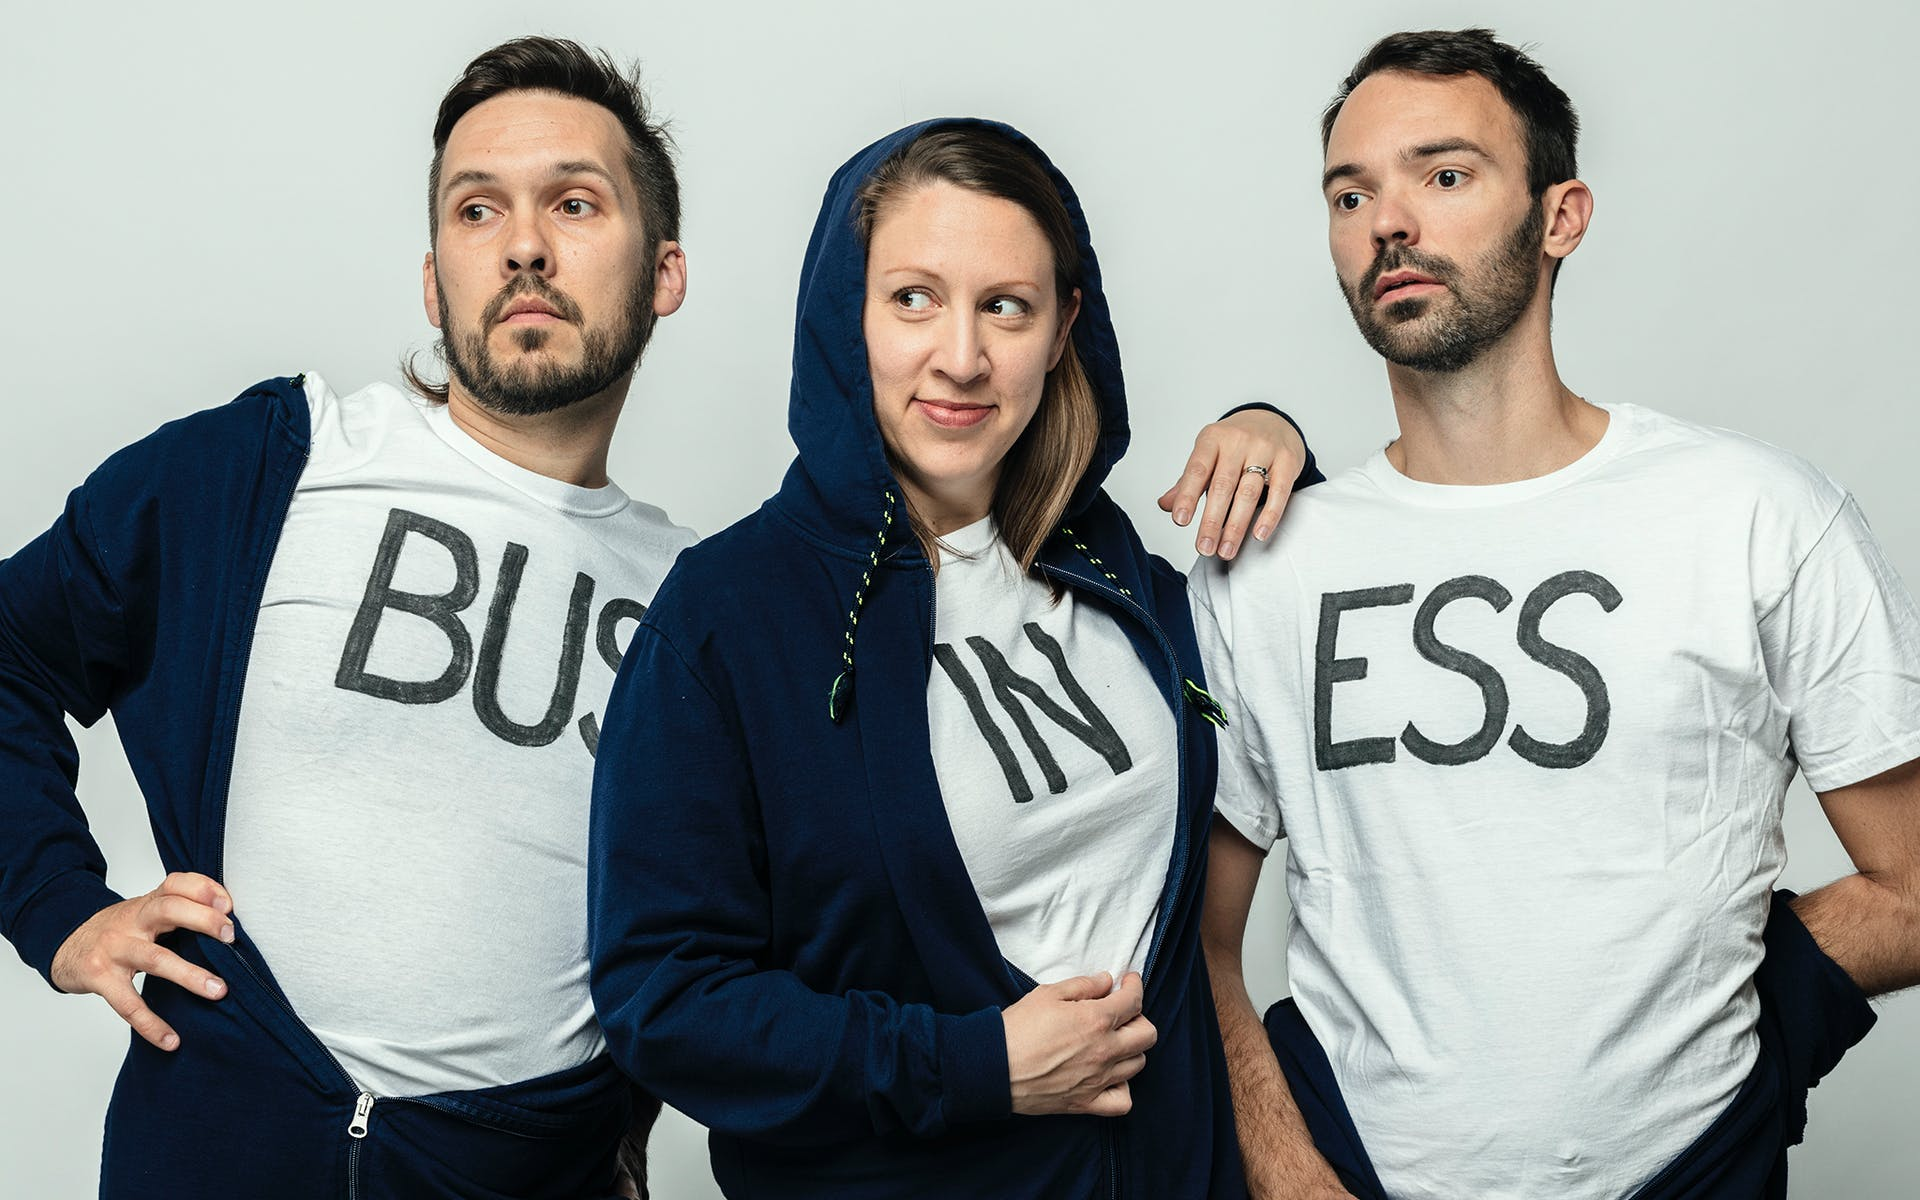 Members of Super Group wearing t-shirts that spell out: BUS IN ESS